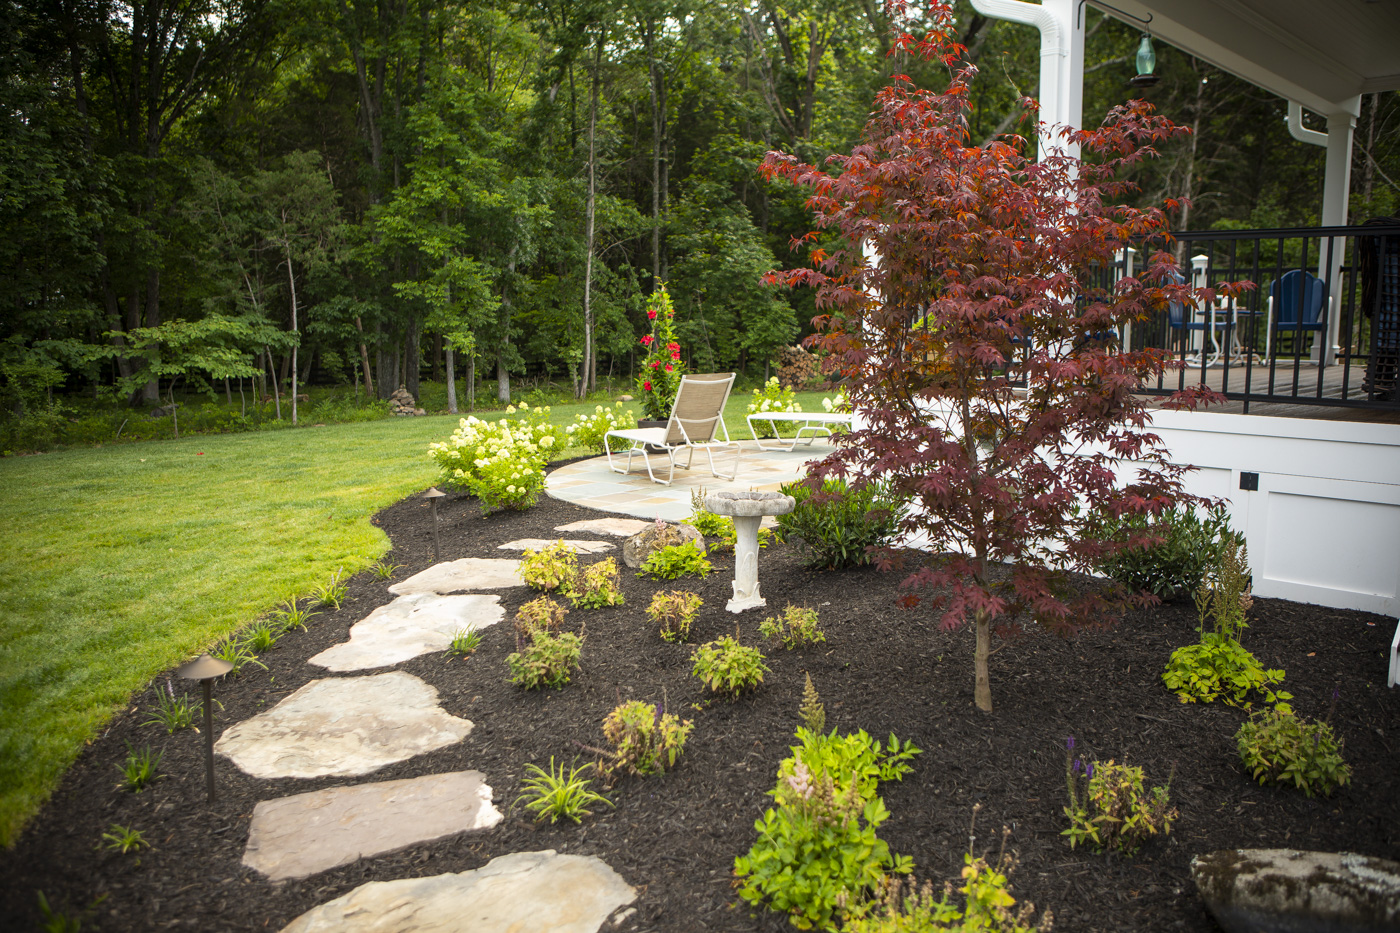 beautiful landscape bed with no weeds